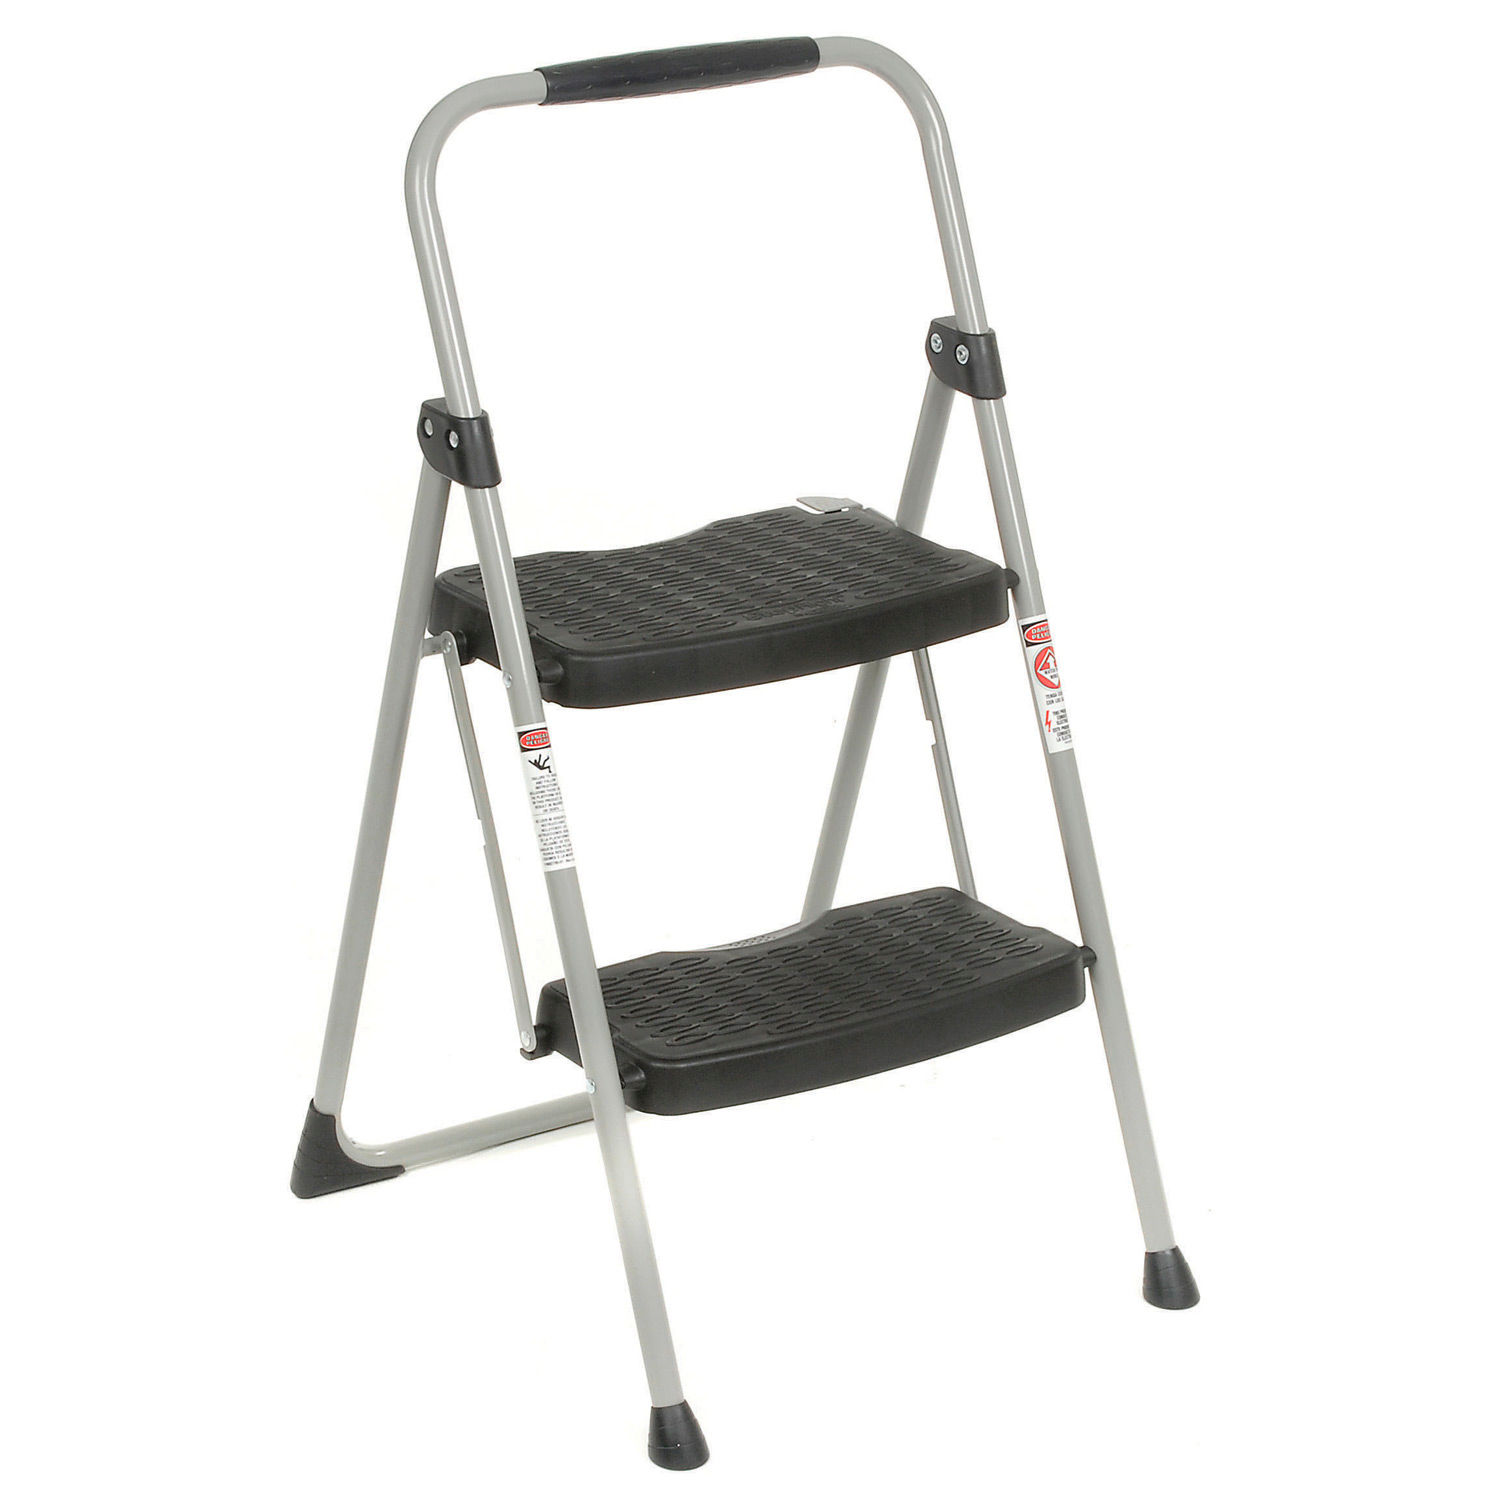 Sensational Ladders Steel Step Ladders Werner 2 Step Steel Folding Creativecarmelina Interior Chair Design Creativecarmelinacom